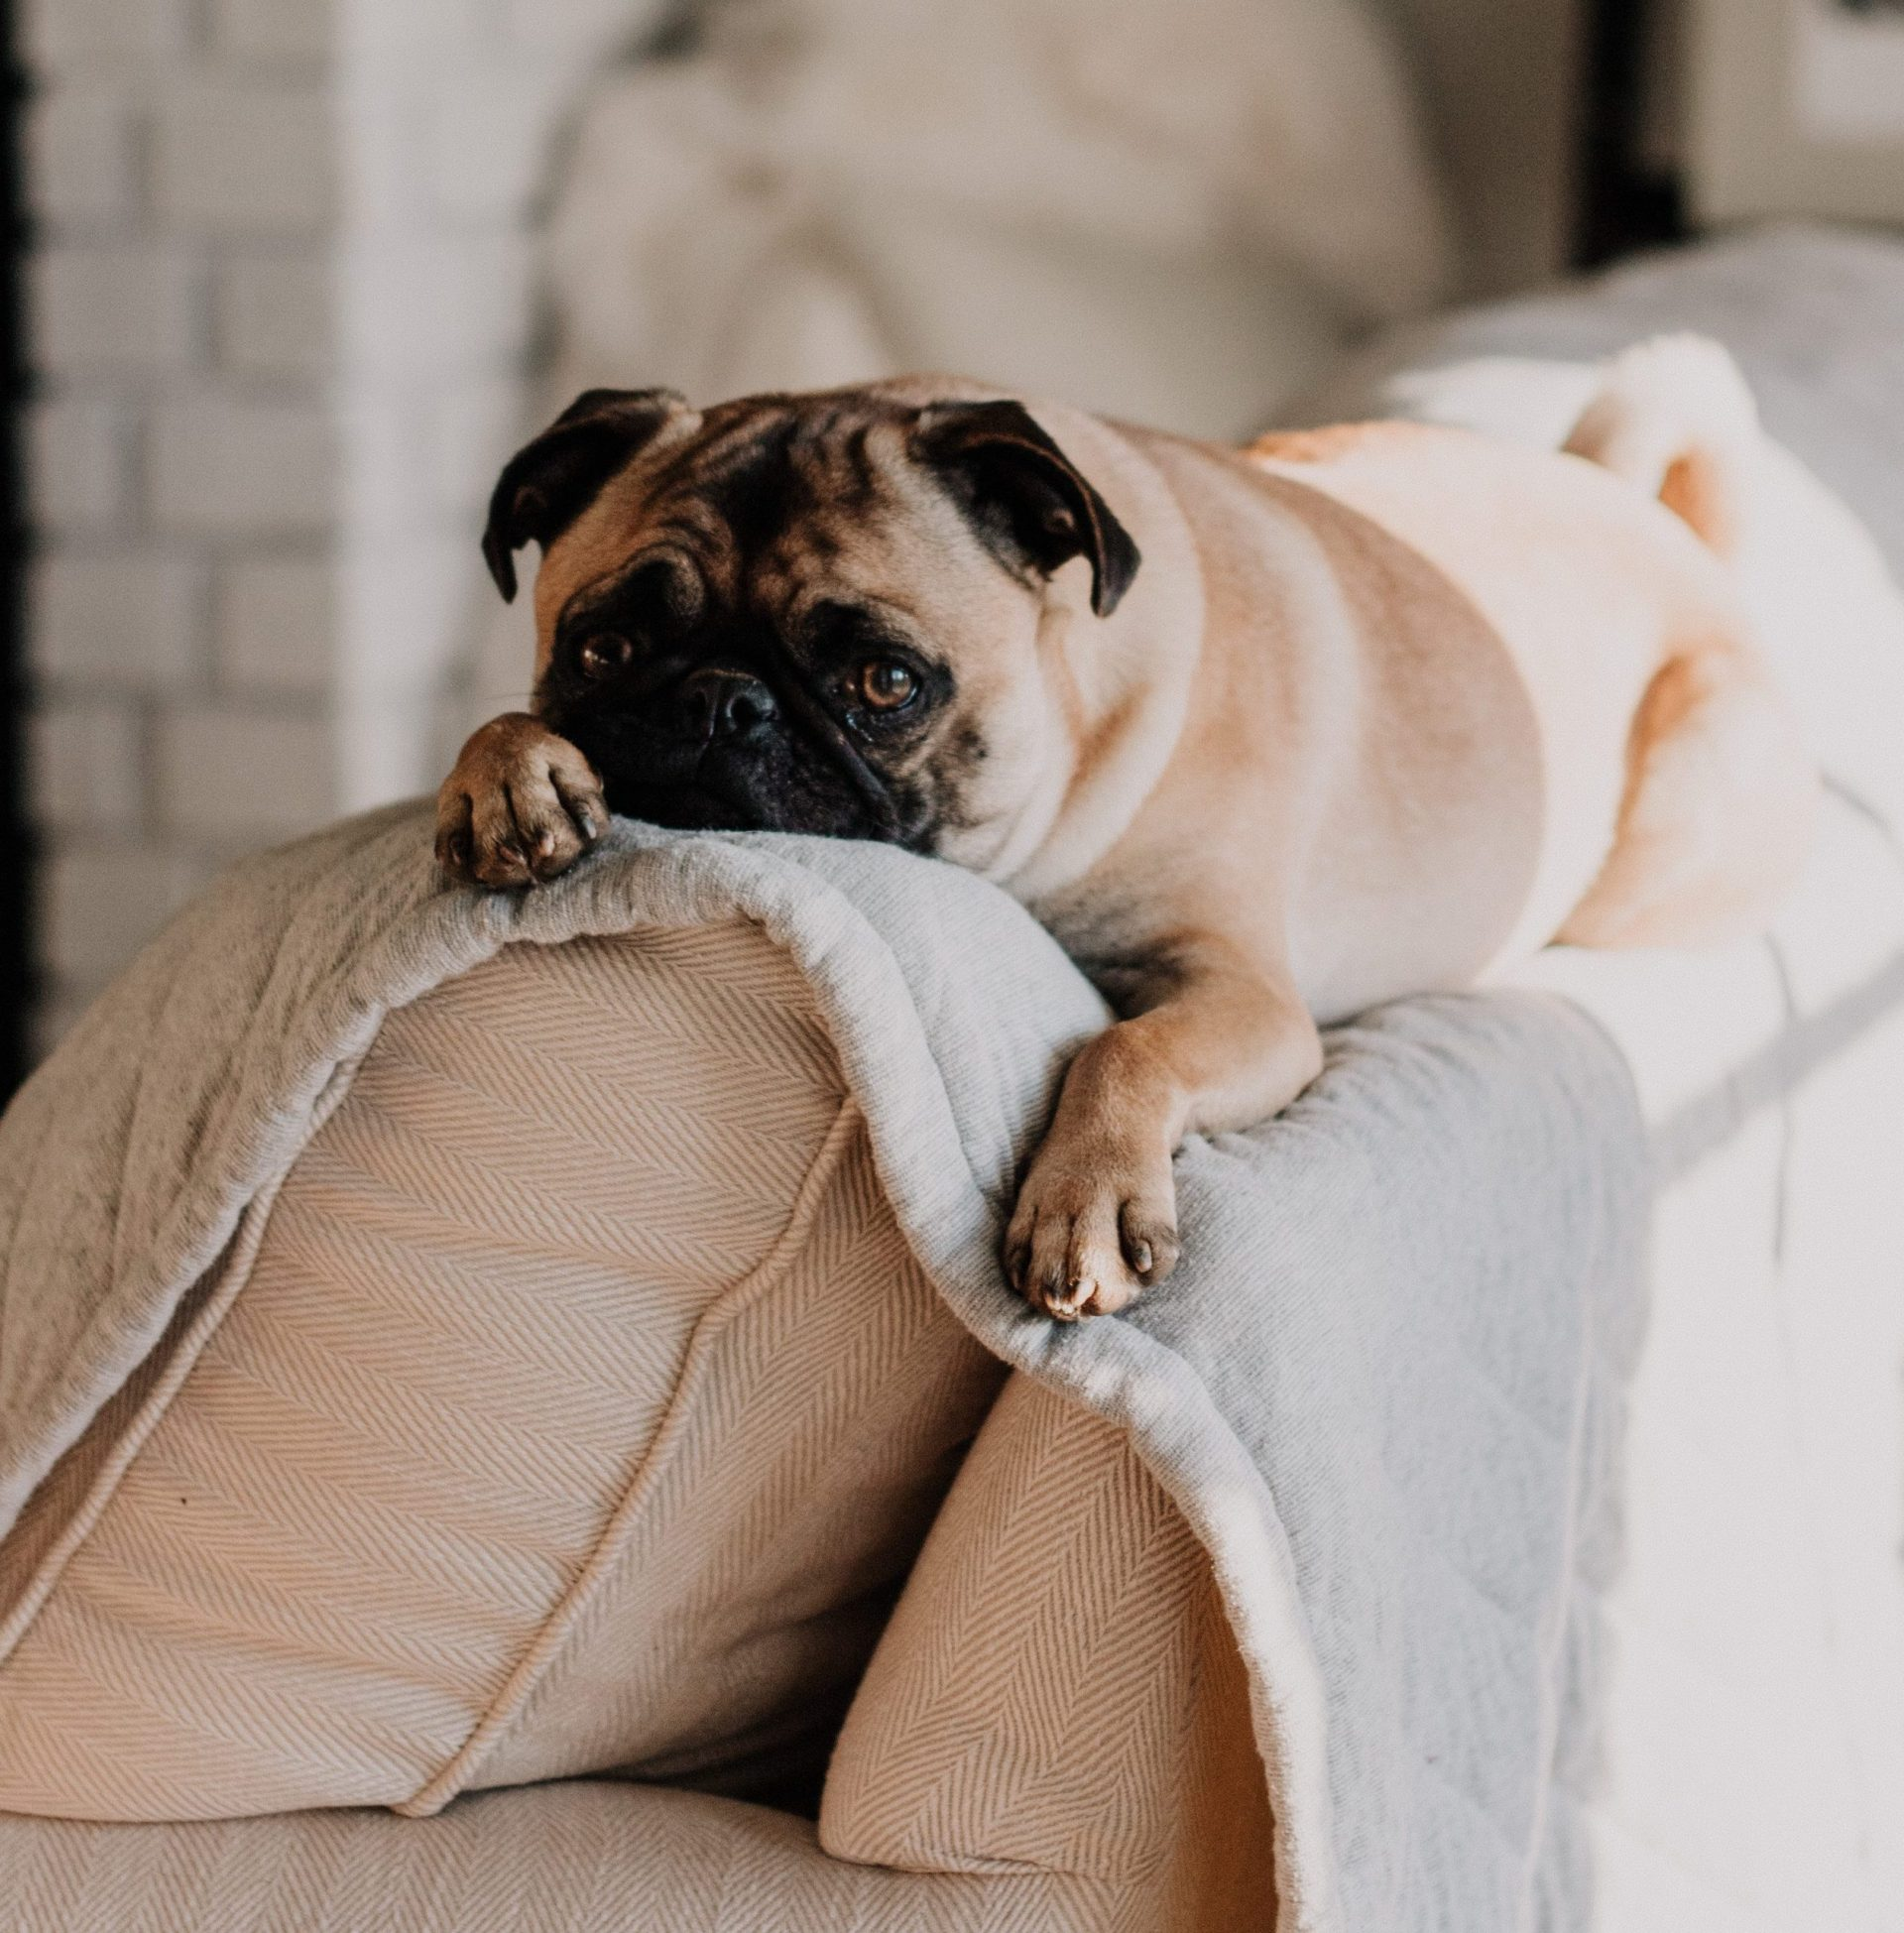 Pug Relaxing on Couch